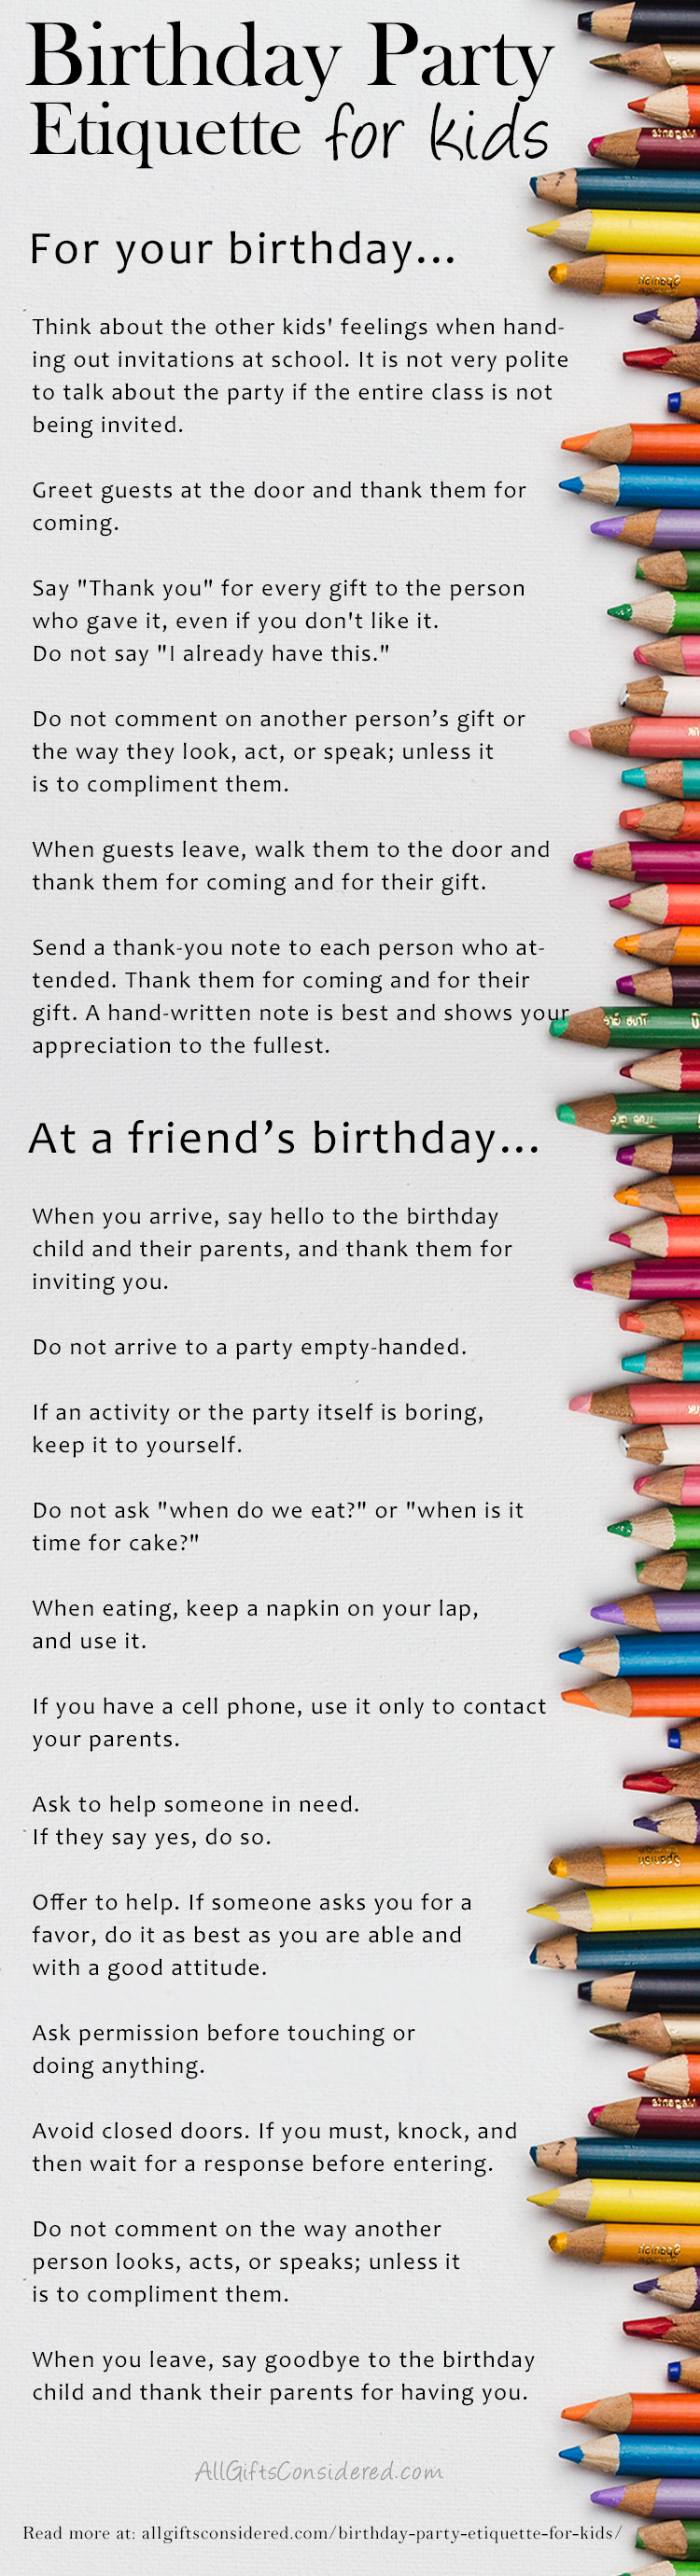 Guide To Birthday Party Etiquette